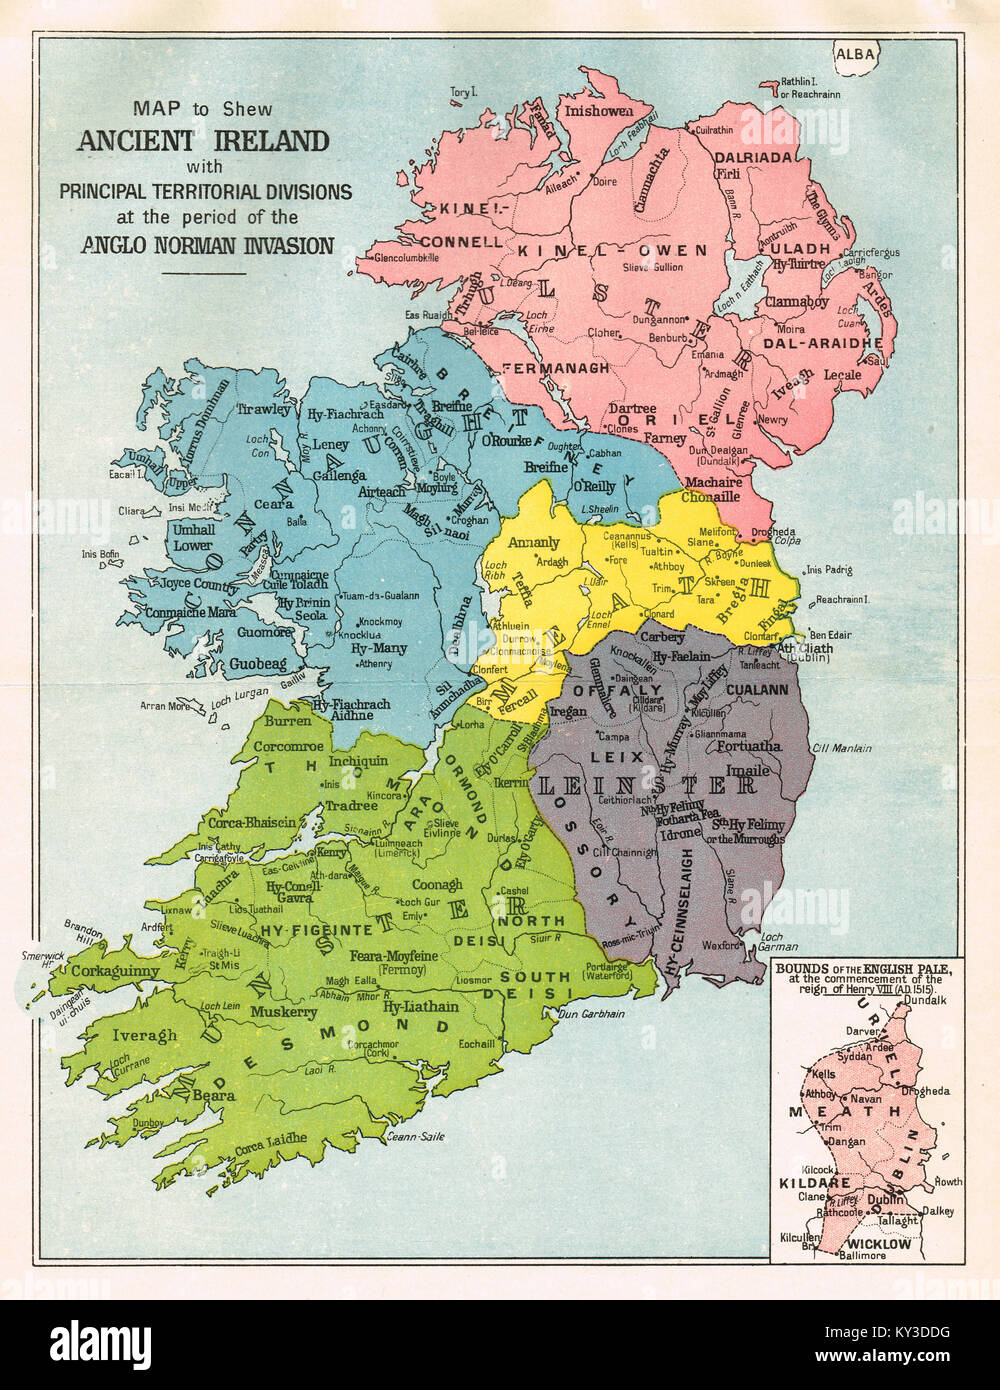 Map of Ireland, at the period of the Anglo Norman invasion - Stock Image